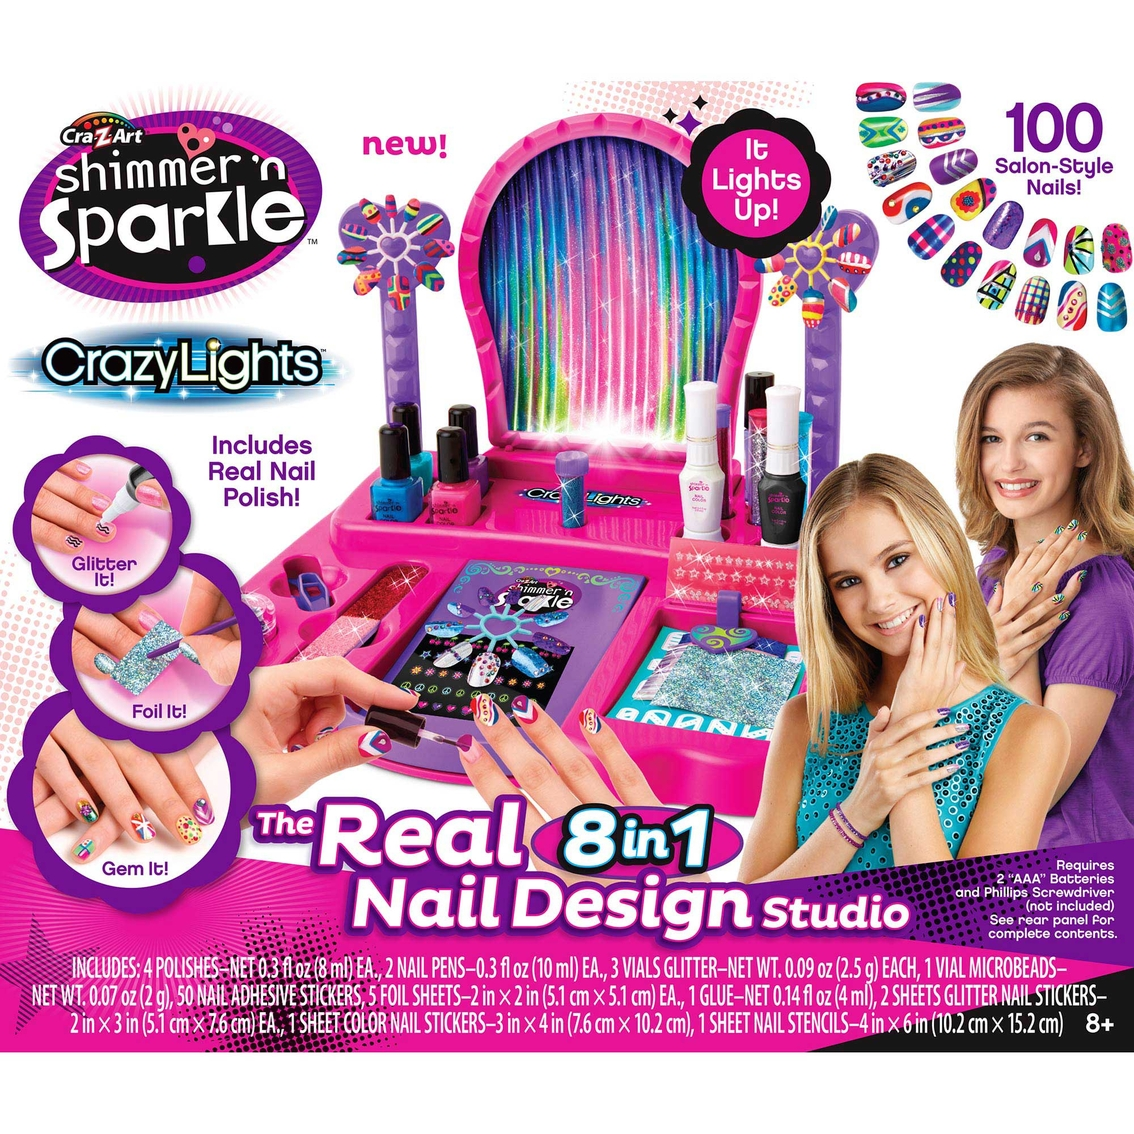 Cra-z-art Shimmer And Sparkle Crazy Lights Super Nail Salon Set ...